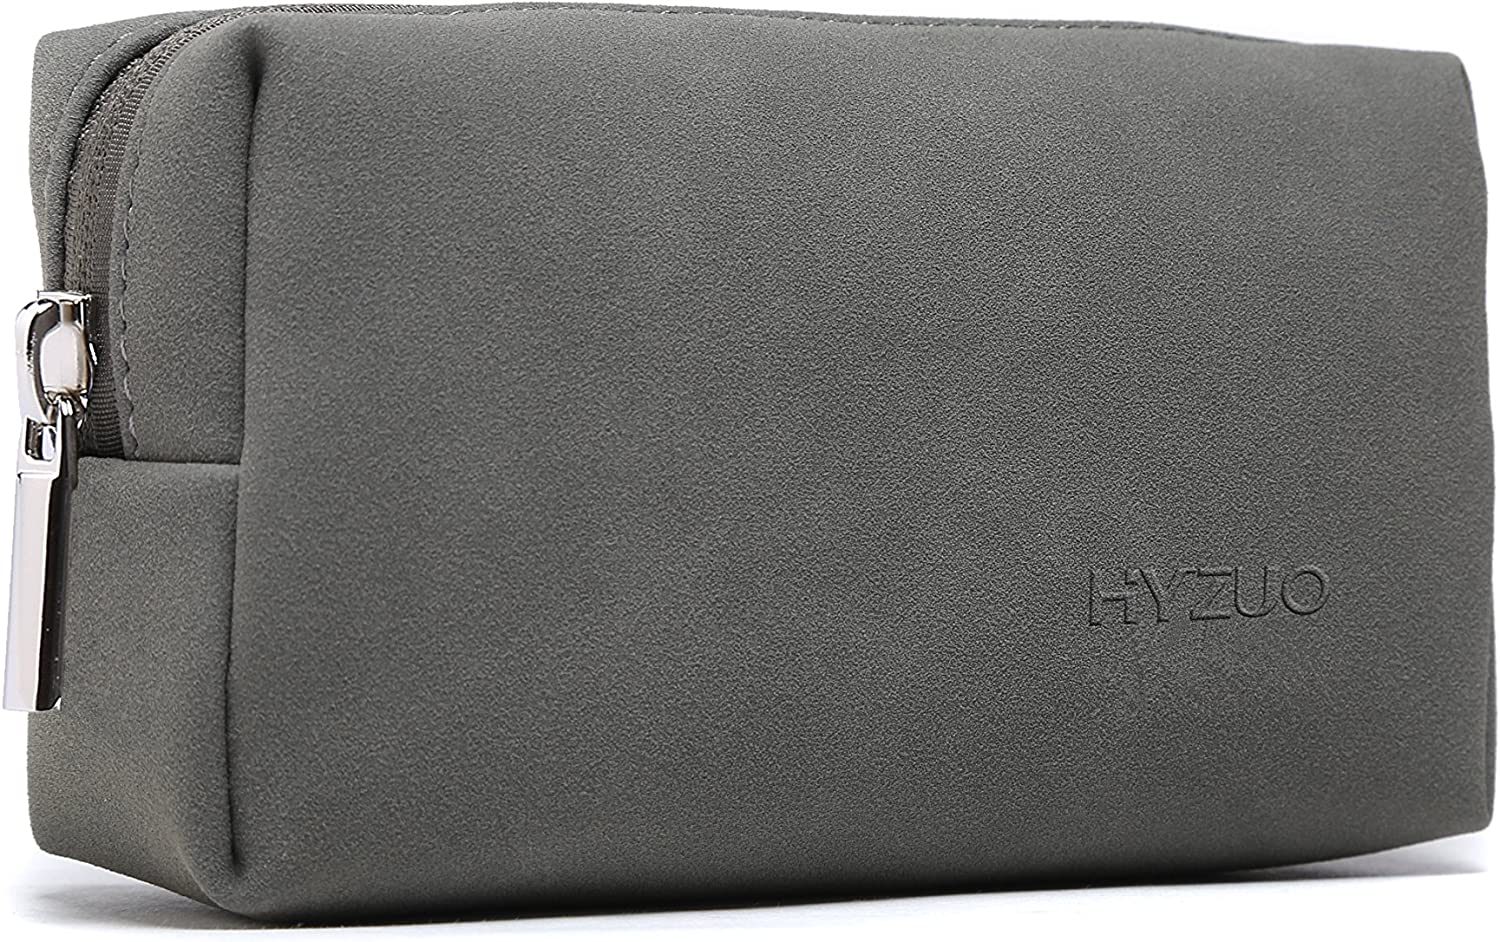 HYZUO Portable Laptop Accessory Pouch Bag Organizer Storage Carrying Case for Laptop Charger Mouse Cables Electronics Cellphone SSD HHD, Matte PU Leather Dark Grey